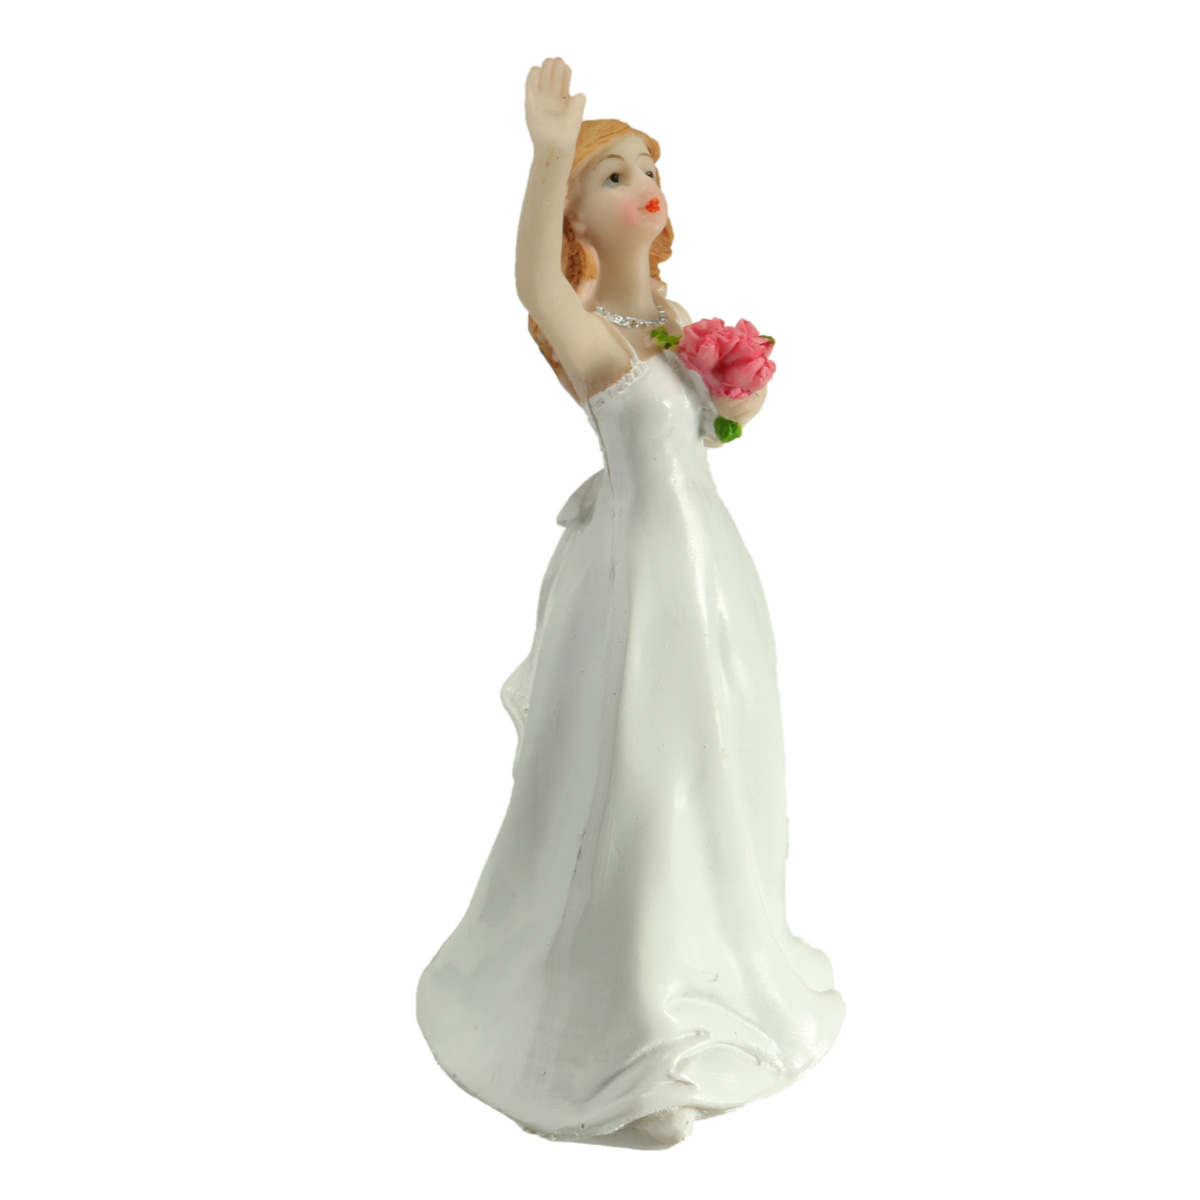 Fishing Bride and Groom Funny Wedding Cake Toppers